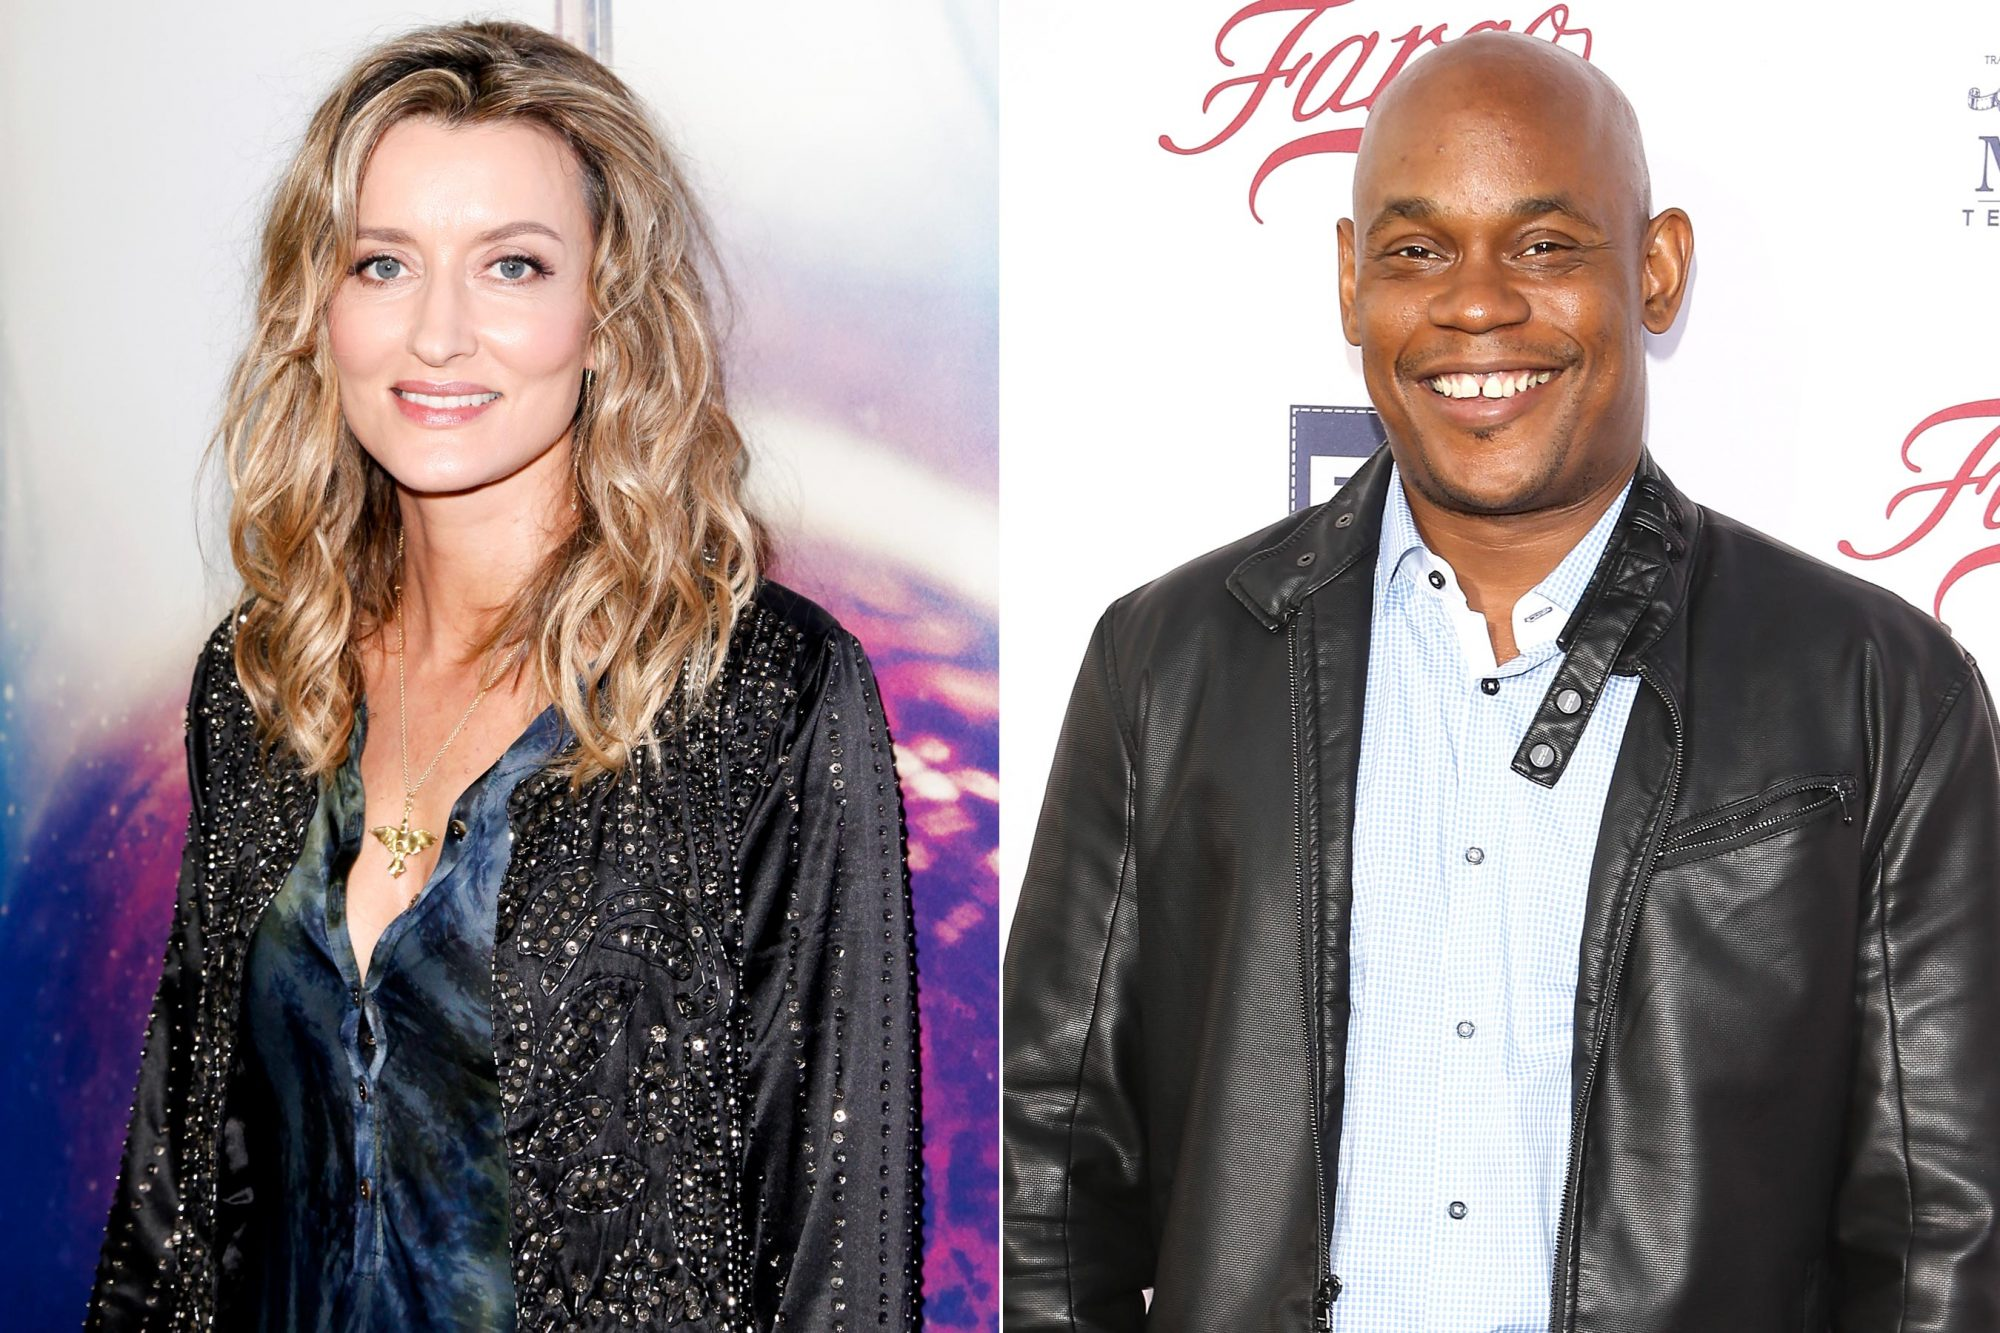 """LOS ANGELES, CA - SEPTEMBER 12: Natascha McElhone attends the premiere of Hulu's 'The First' at California Science Center on September 12, 2018 in Los Angeles, California. (Photo by Tibrina Hobson/Getty Images) LOS ANGELES, CA - APRIL 28: Bokeem Woodbine arrives at the for your consideration event for FX's """"Fargo"""" held at Paramount Pictures on April 28, 2016 in Los Angeles, California. (Photo by Michael Tran/FilmMagic)"""